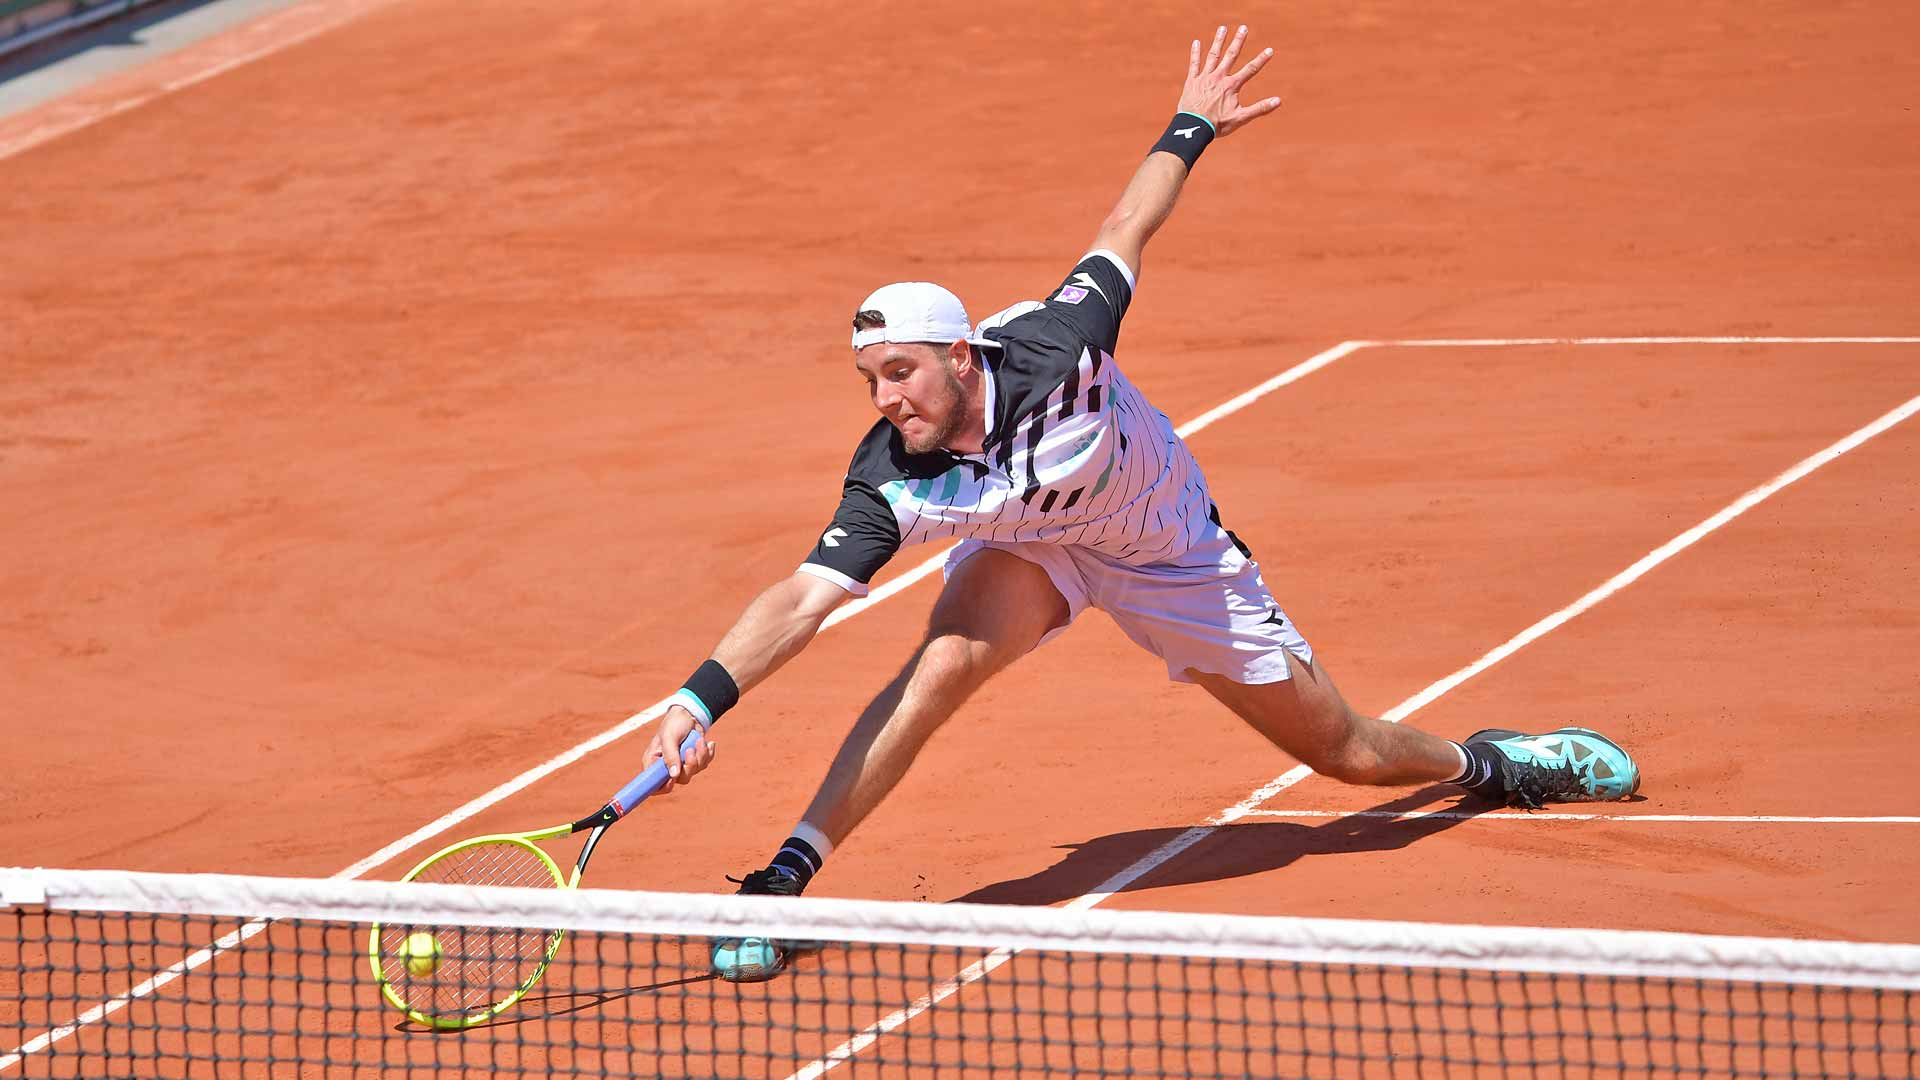 Jan-Lennard Struff stretches for a forehand at Roland Garros